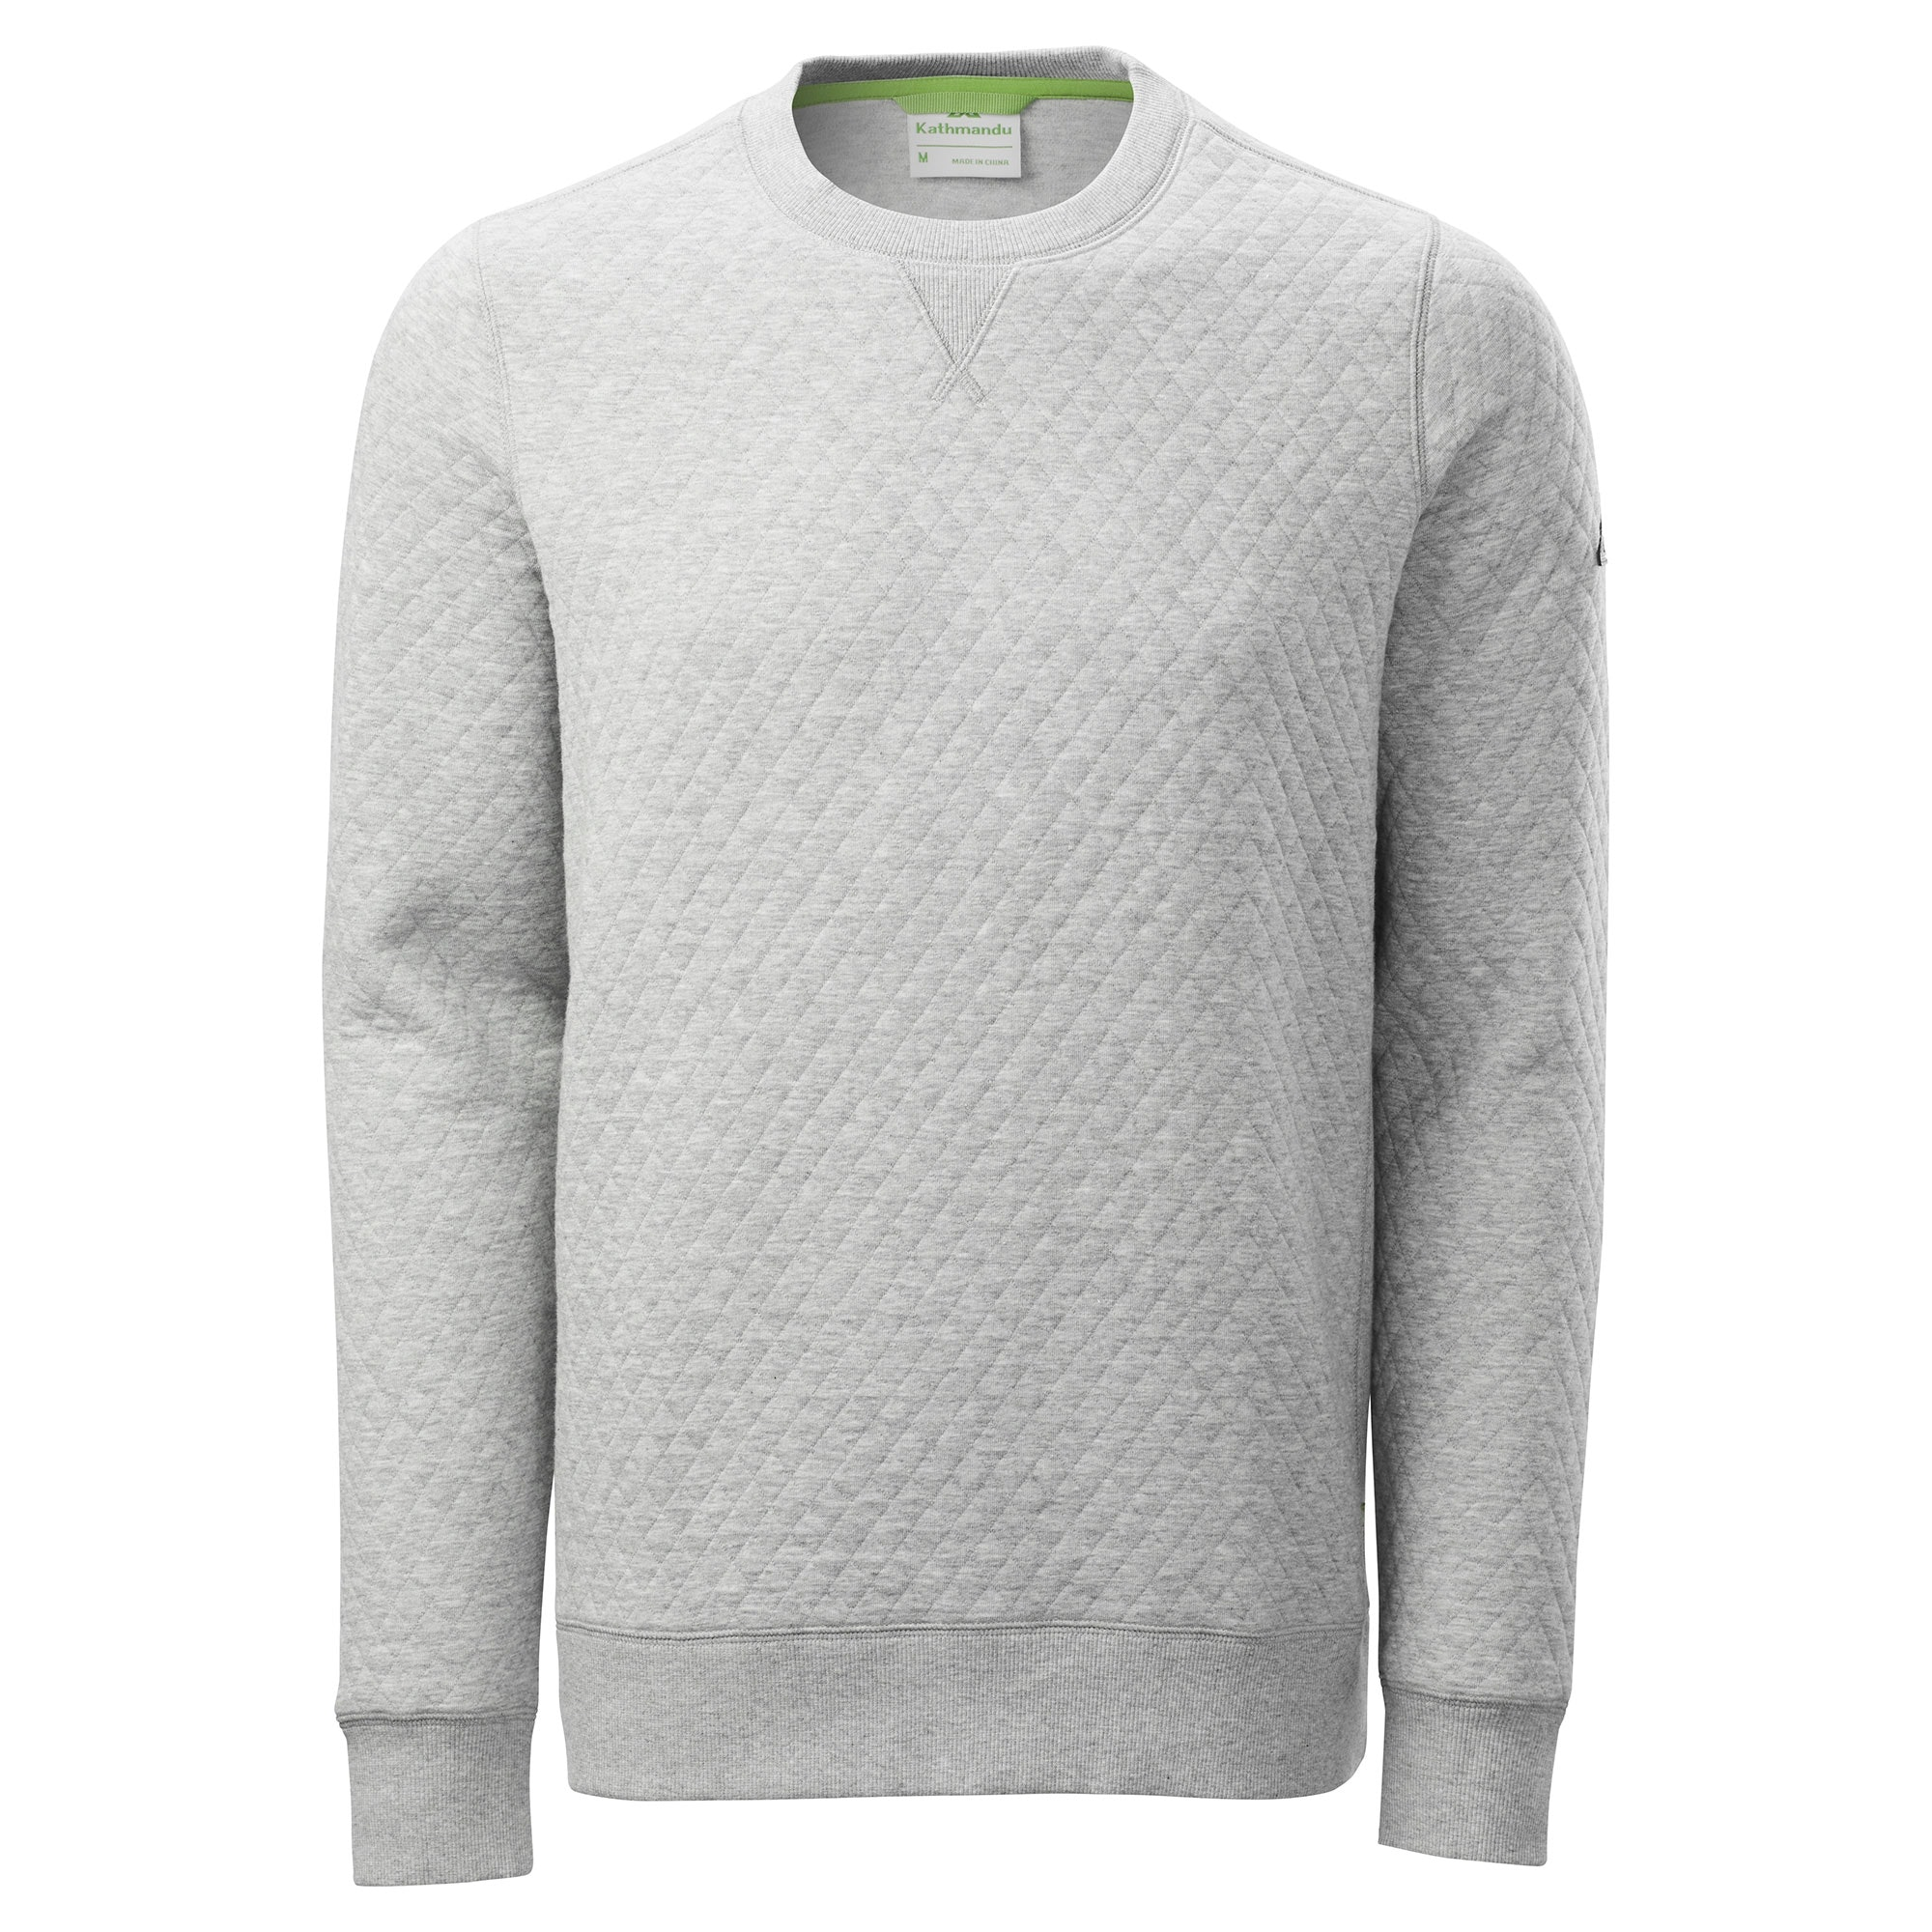 03f0113296 Details about NEW Kathmandu Flaxton Mens Quilted Sweatshirt Crew Neck  Jumper Pullover Top